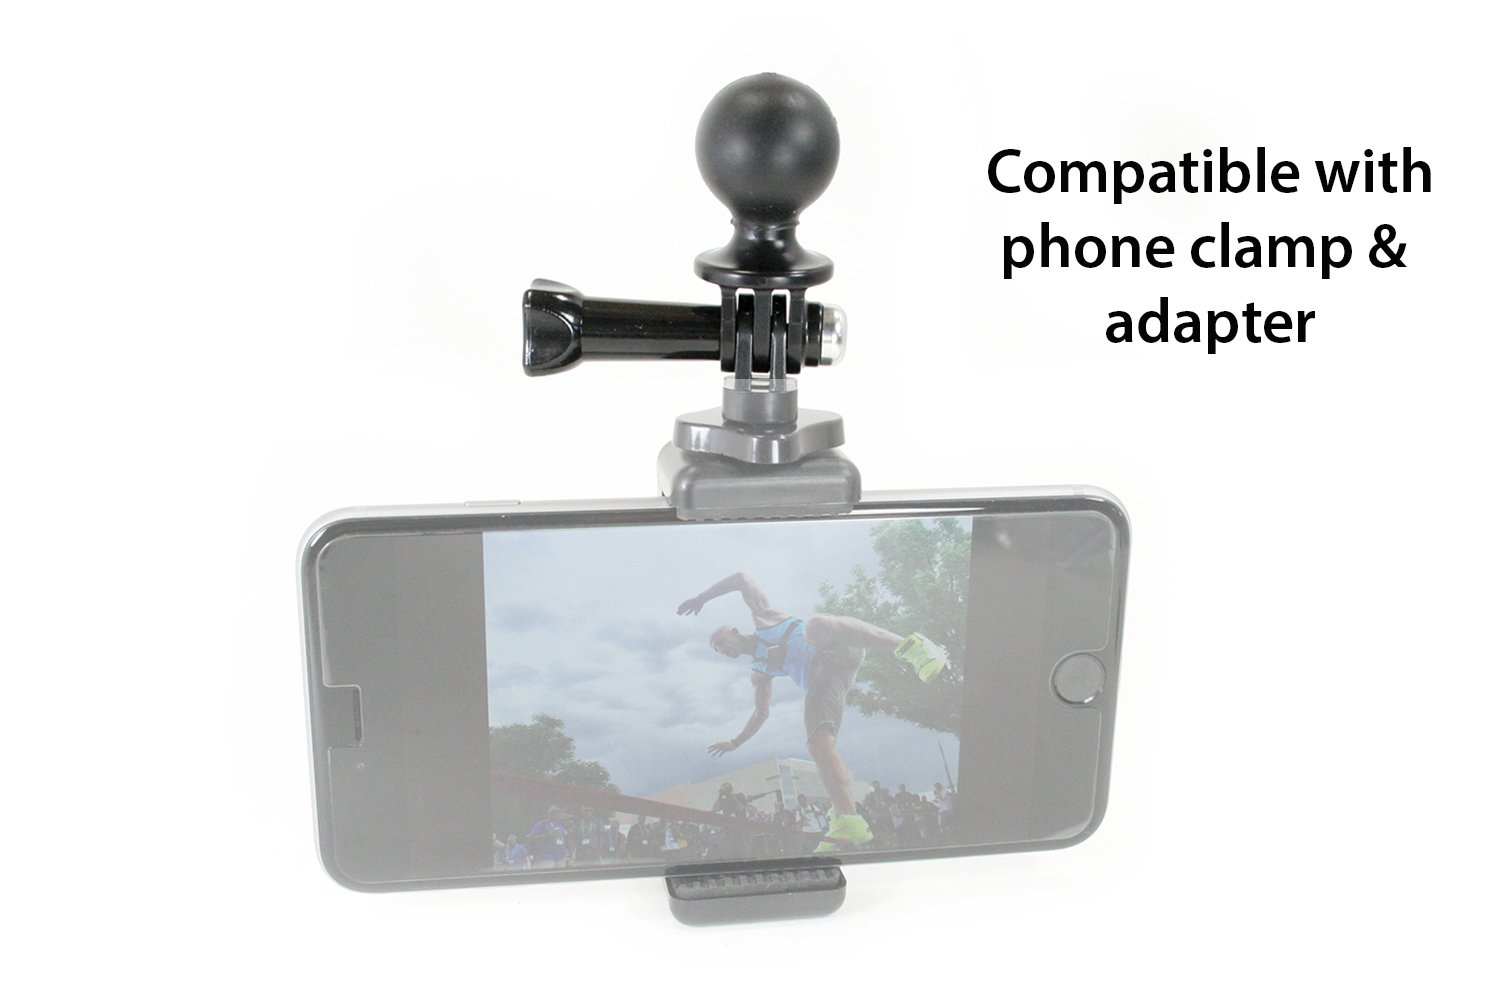 GoPro Adapter w/1'' Ball for RAM Mounts - Universal Conversion Adapter | This Vertical Adapter Allows You to Use GoPro or Action Mount with any RAM Style Mount.